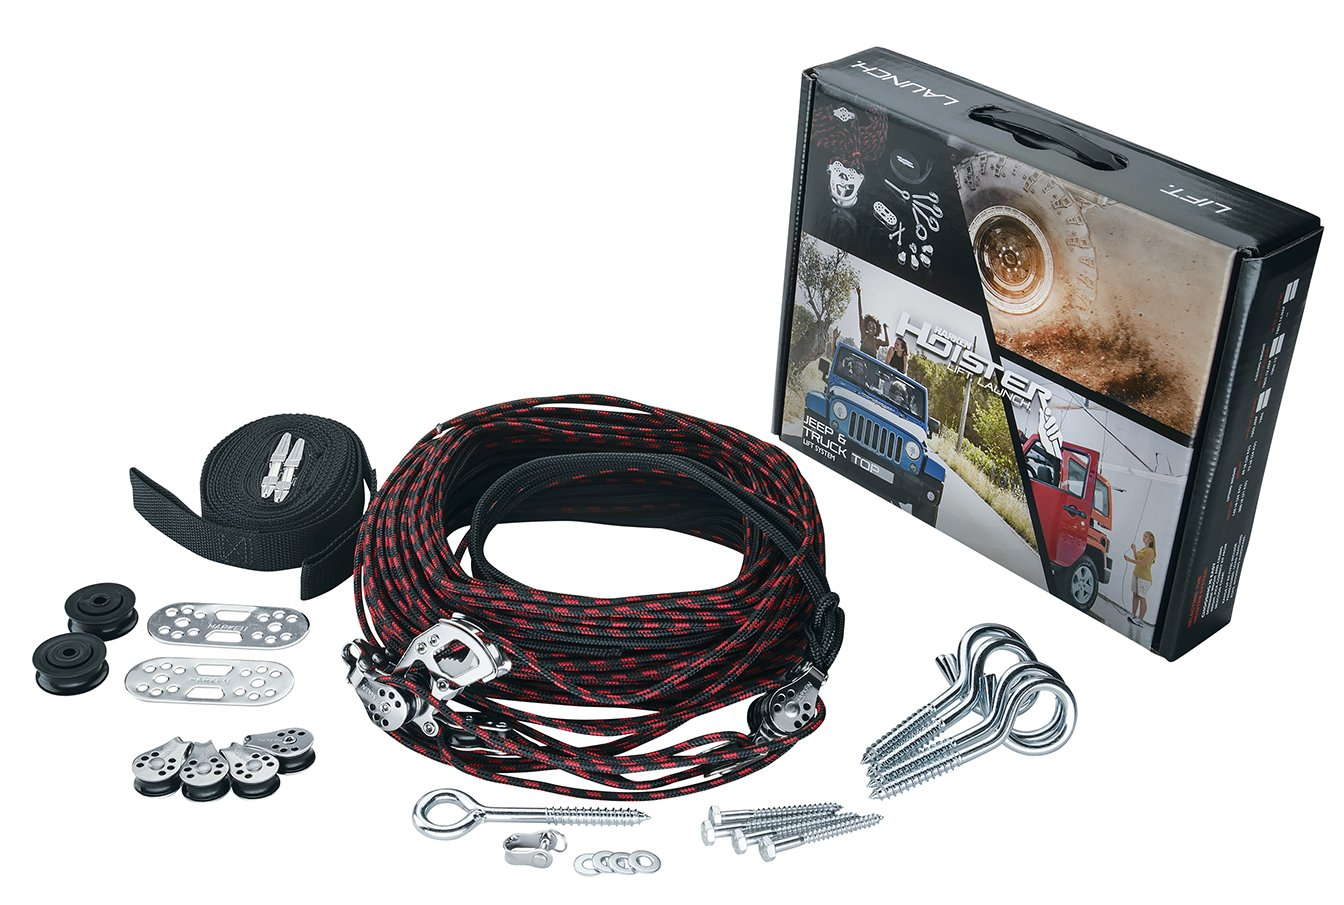 Garage Ceiling Storage Lift Harken Hoist with Bonus Rope Cleat | Lift and Store Anything Up to 200lbs | Safe for 1 Person Operation | Lifts Evenly with 8:1 Mechanical Advantage | Organize Your Garage by Harken Hoister (Image #2)